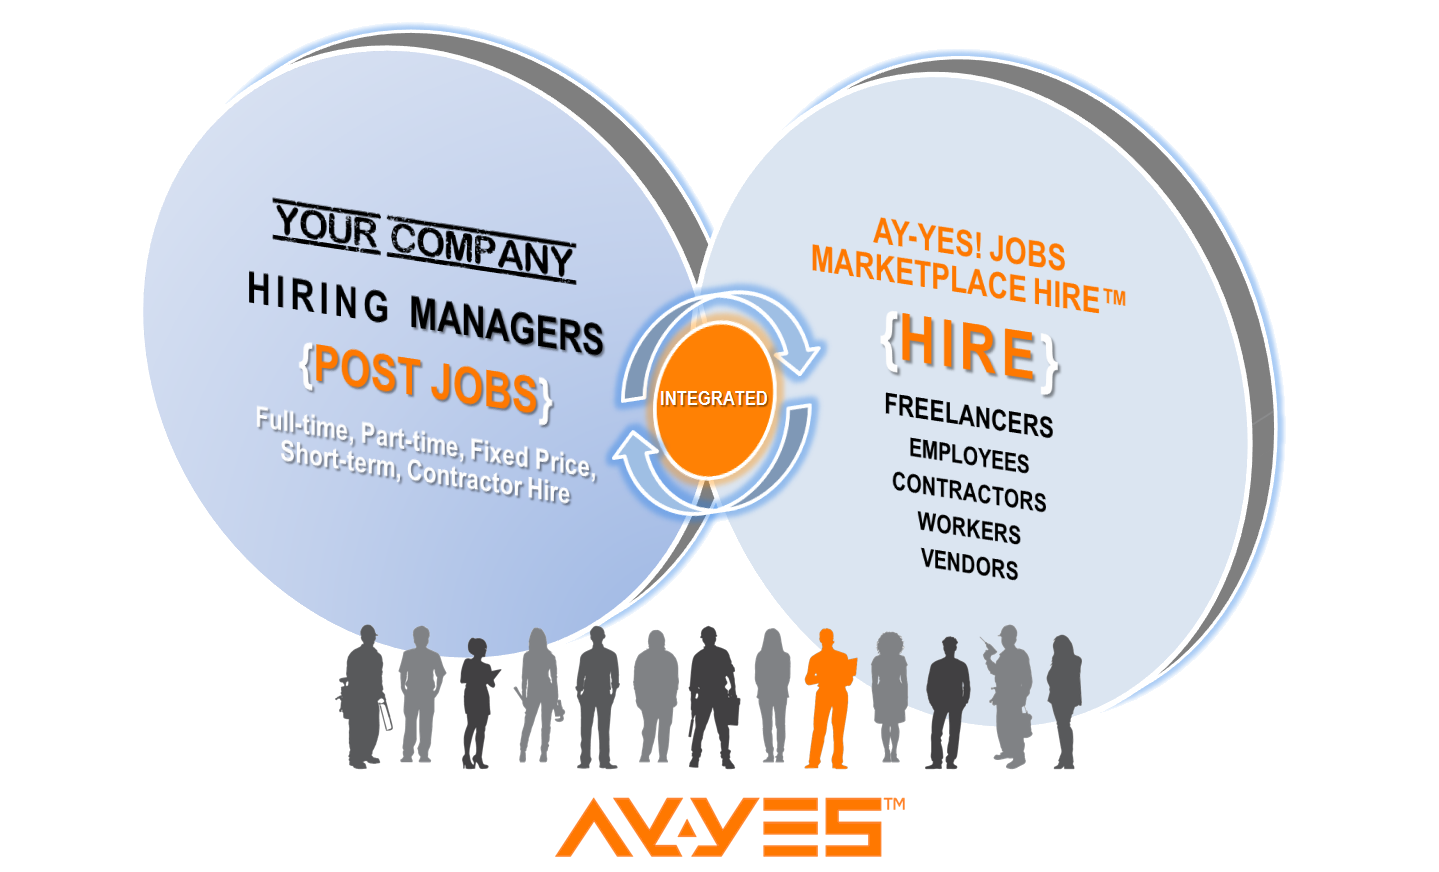 Jobs-Marketplace-Hire AYYES-Platform-As-A-Service-Hiring Freelancers